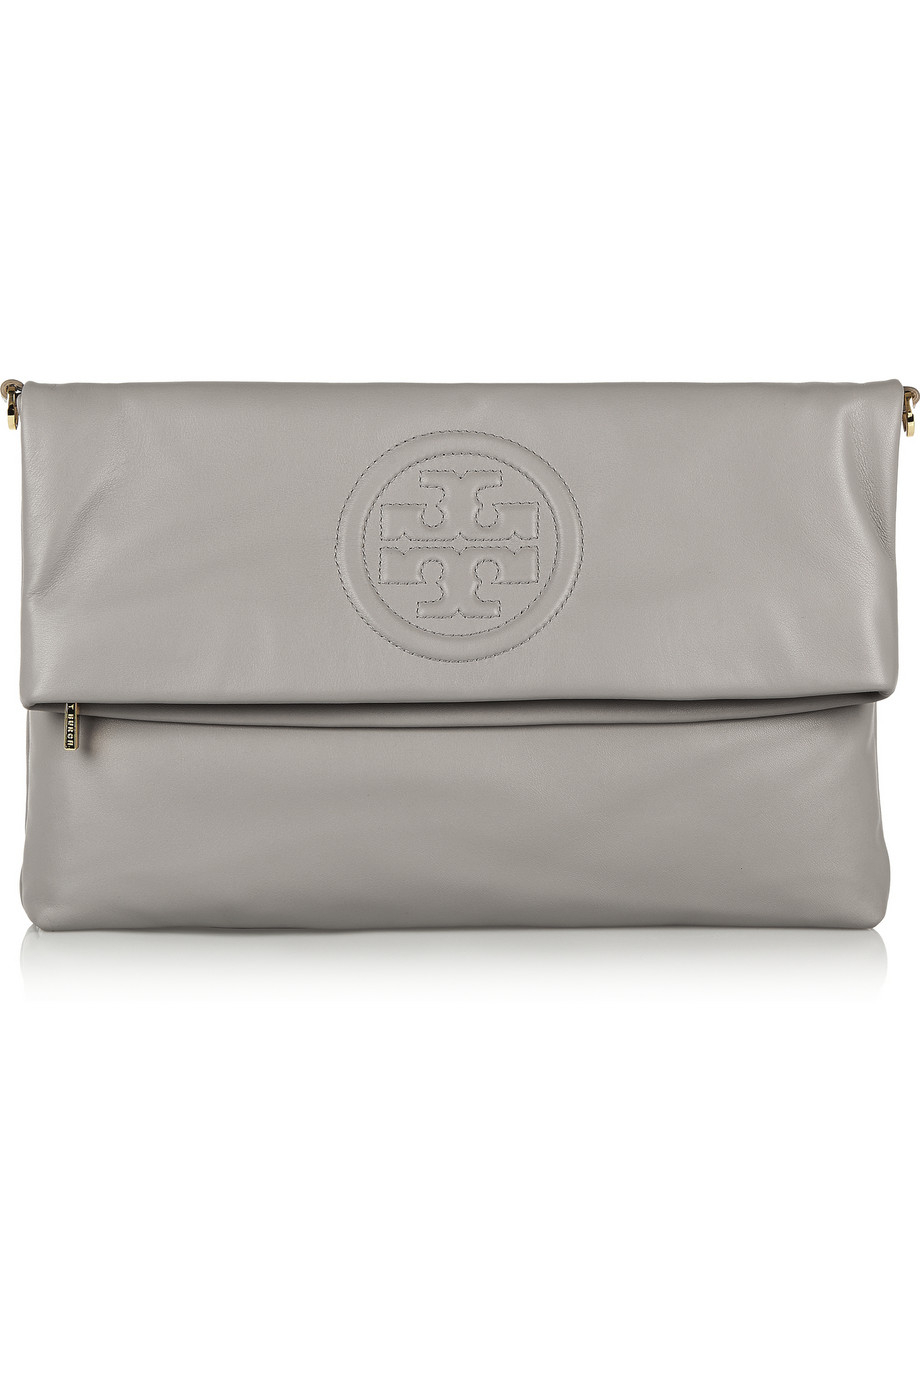 d35f507f523 Tory Burch Bombe Fold-over Clutch in Gray - Lyst